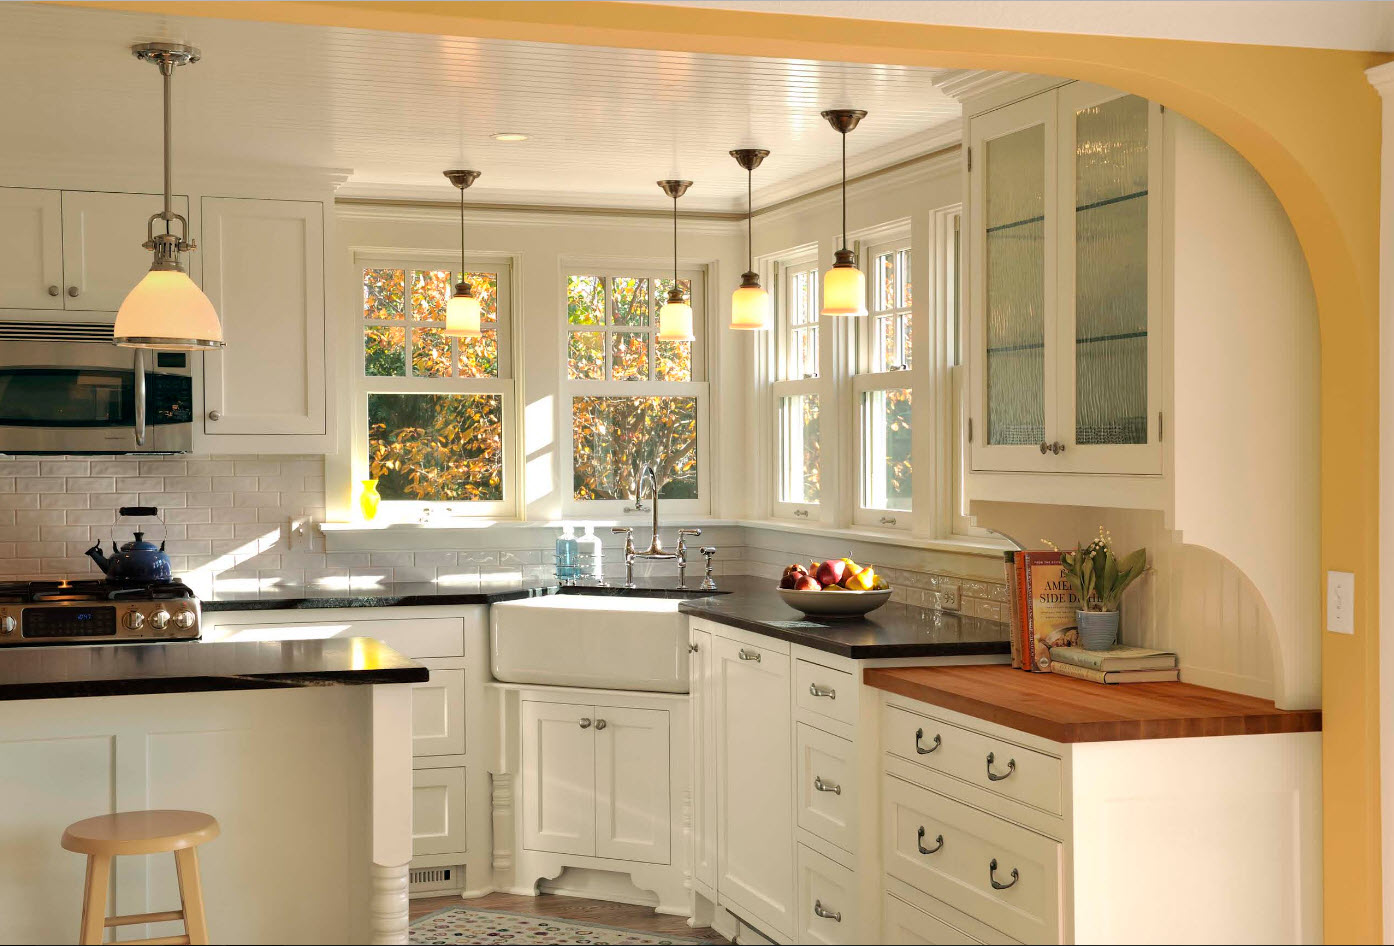 Angular Kitchen Layout Design Ideas 2017. Classic setting and couple of windows